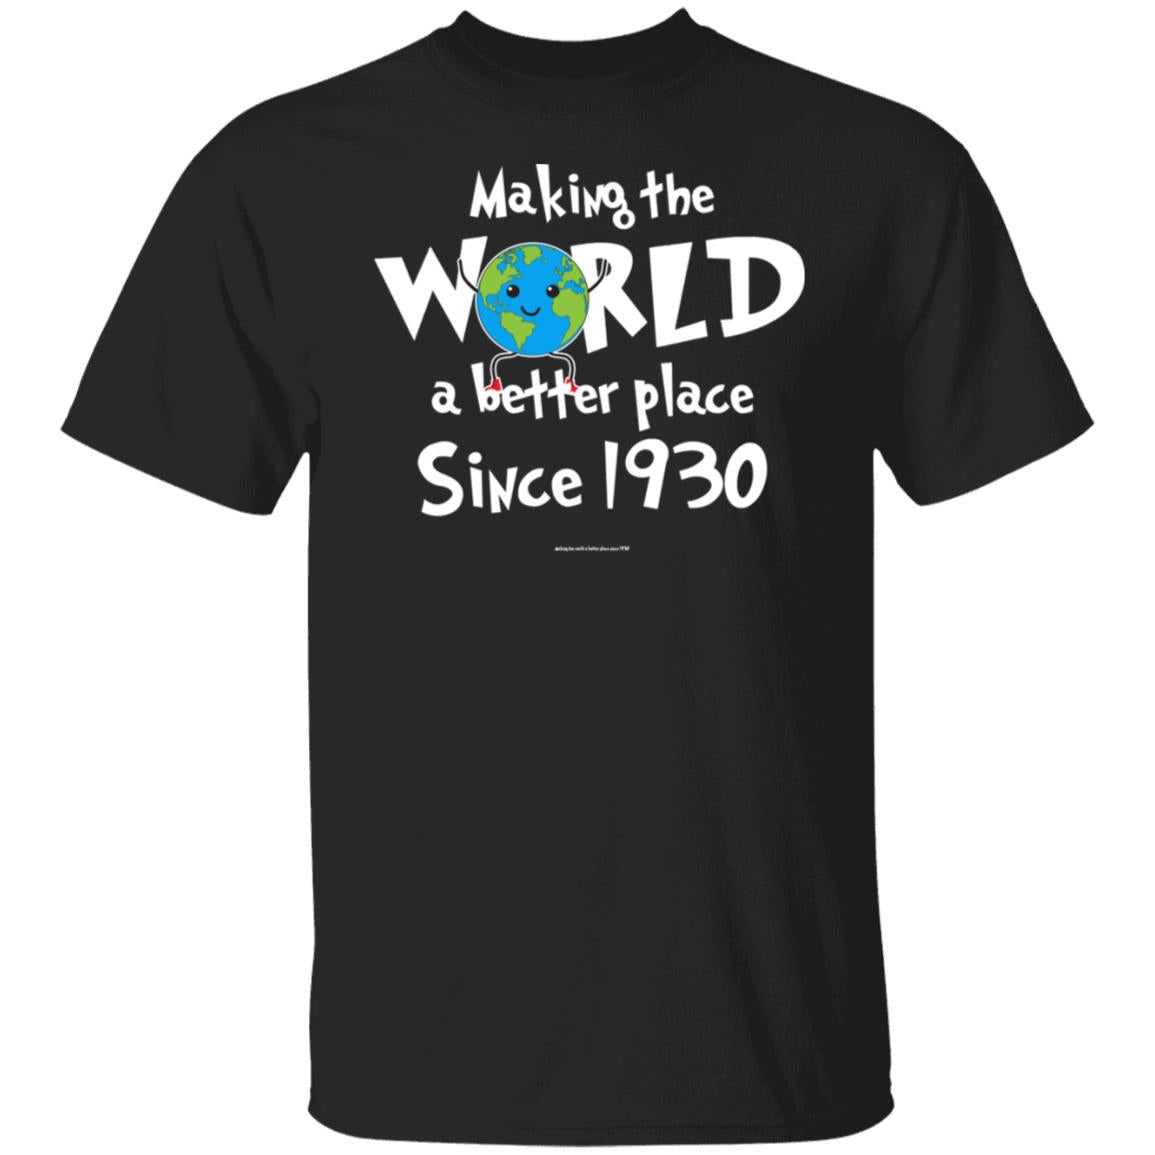 Making-the-world-a-better-place-since-1930 Black T-Shirt 99promocode